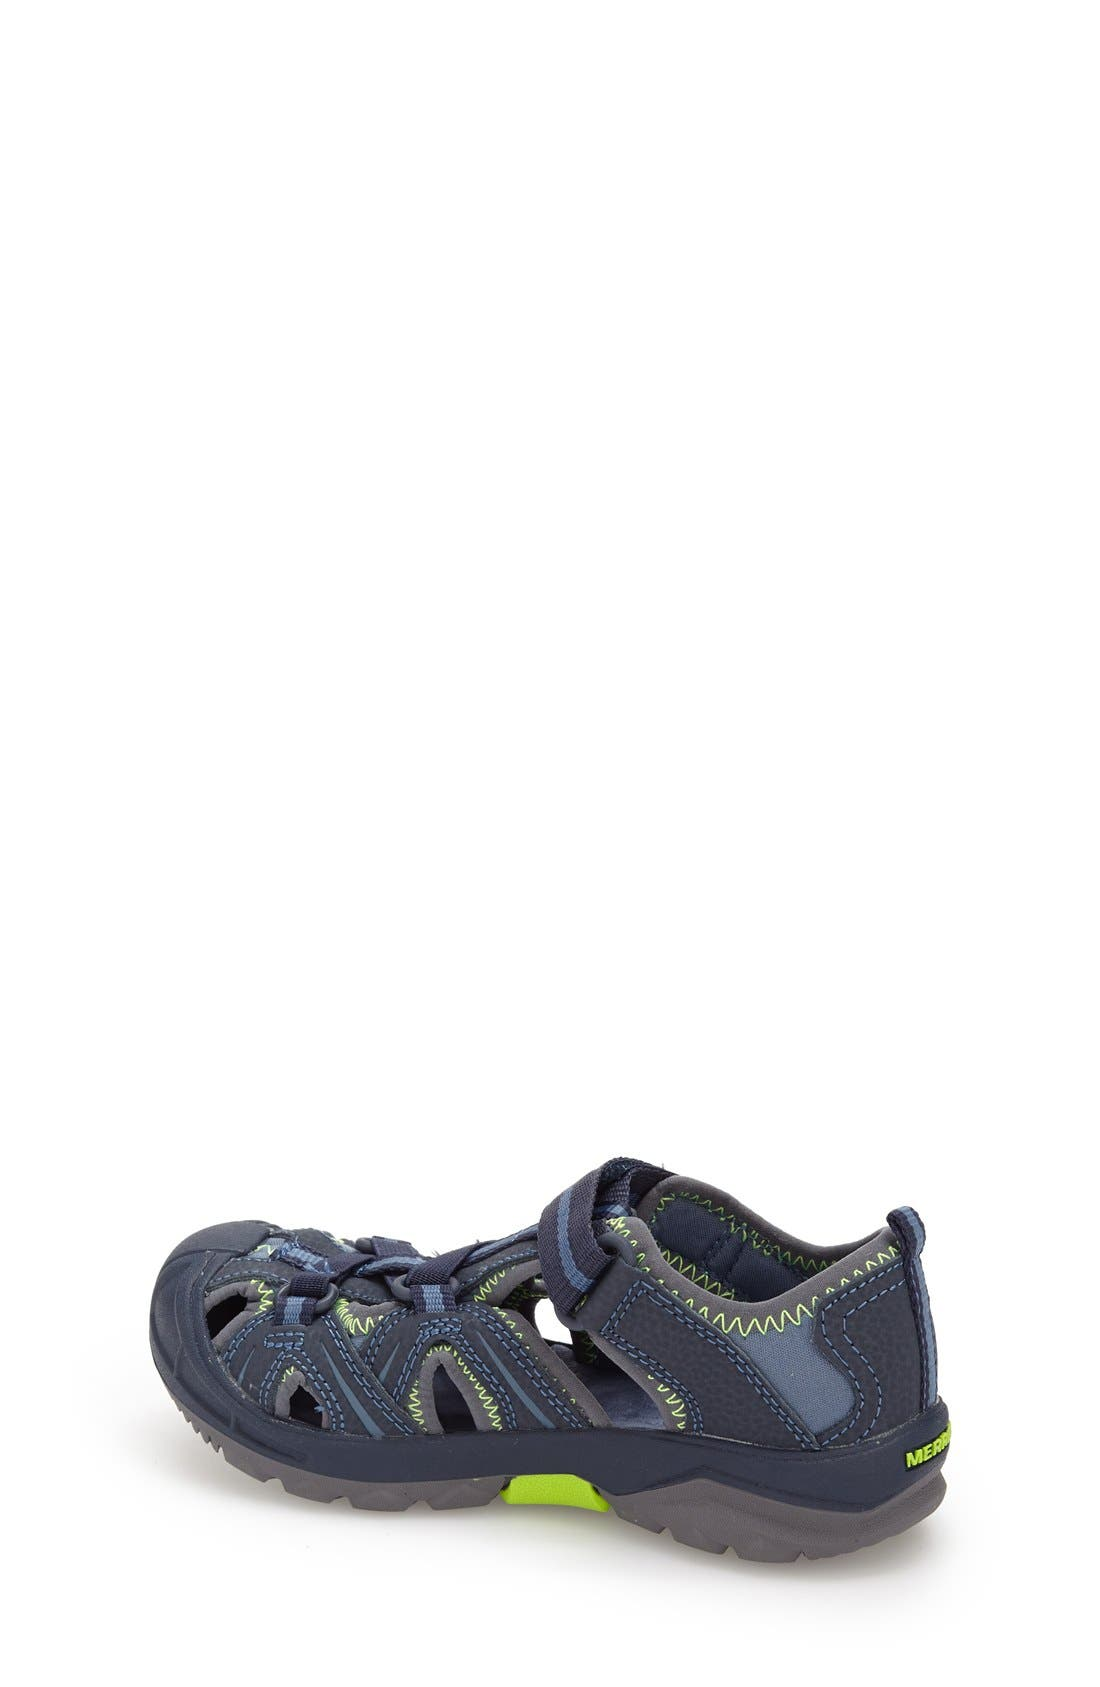 Hydro Water Sandal,                             Alternate thumbnail 2, color,                             NAVY/ GREEN